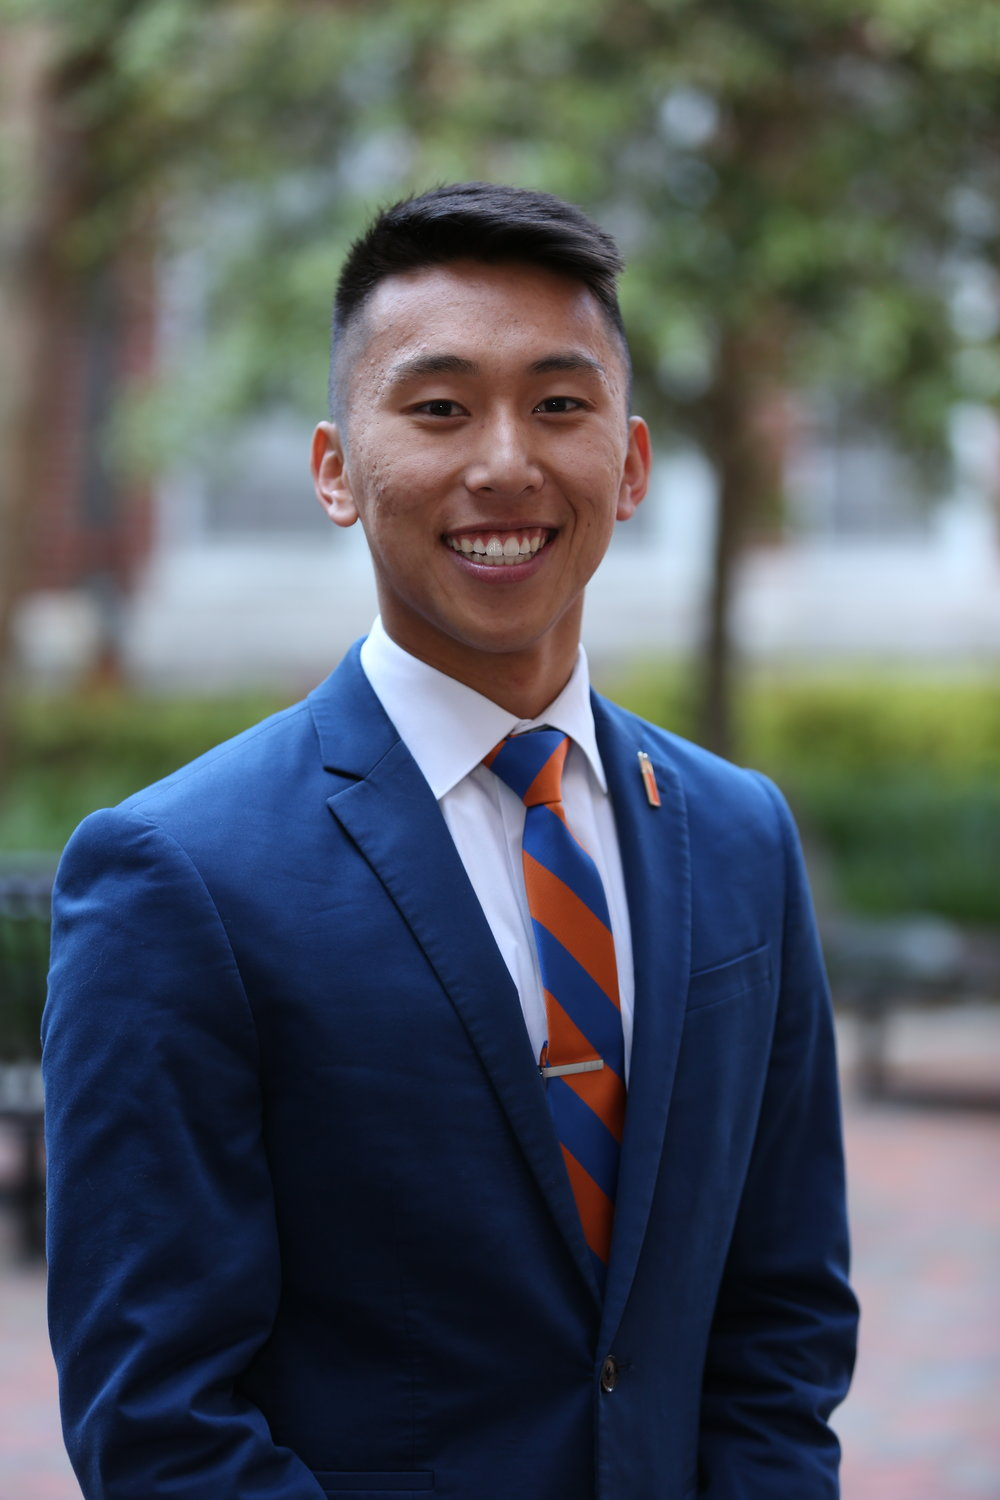 Major(s) : General Business on Pre-Health Track   Minor(s) : N/A   Involvement : Asian American Student Union, Student Government, Global Medical Missions Alliance   Interests/ Hobbies : Ultimate Frisbee, eating, watching food network, swimming, guitar, traveling   Fun Fact : Both my parents work at the University of Florida